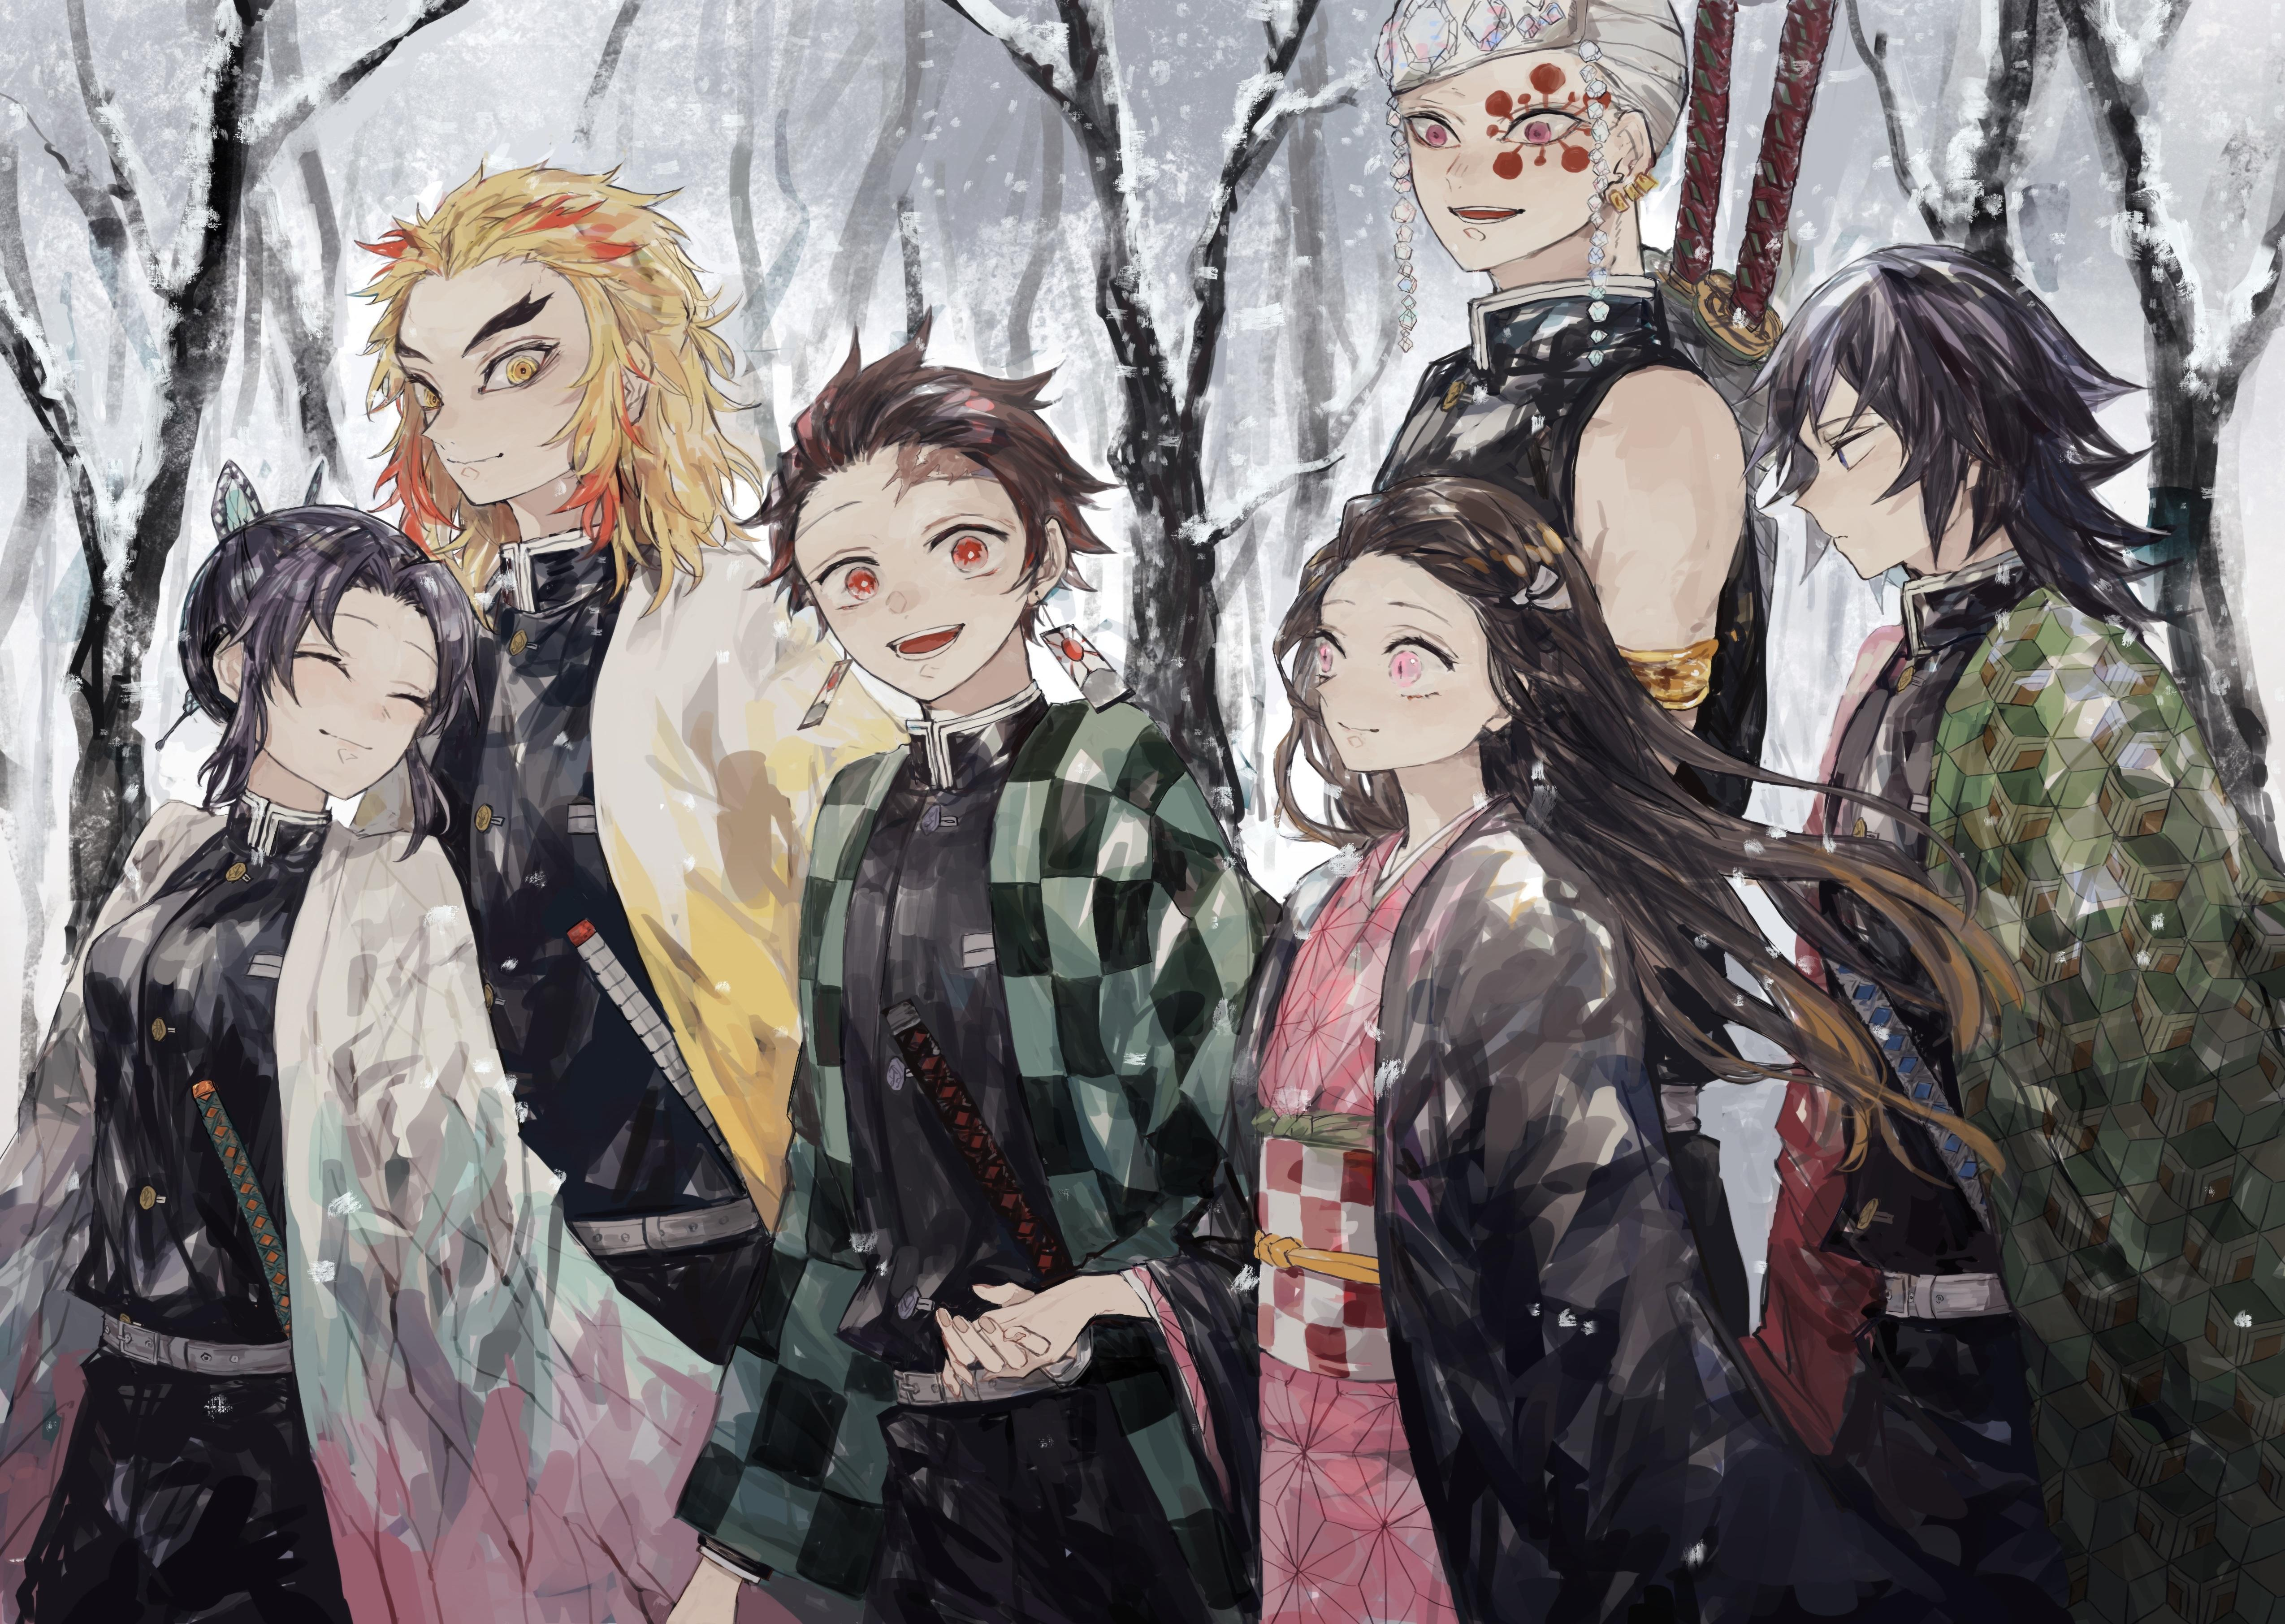 Demon Slayer: Kimetsu no Yaiba 4k Ultra HD Wallpapers